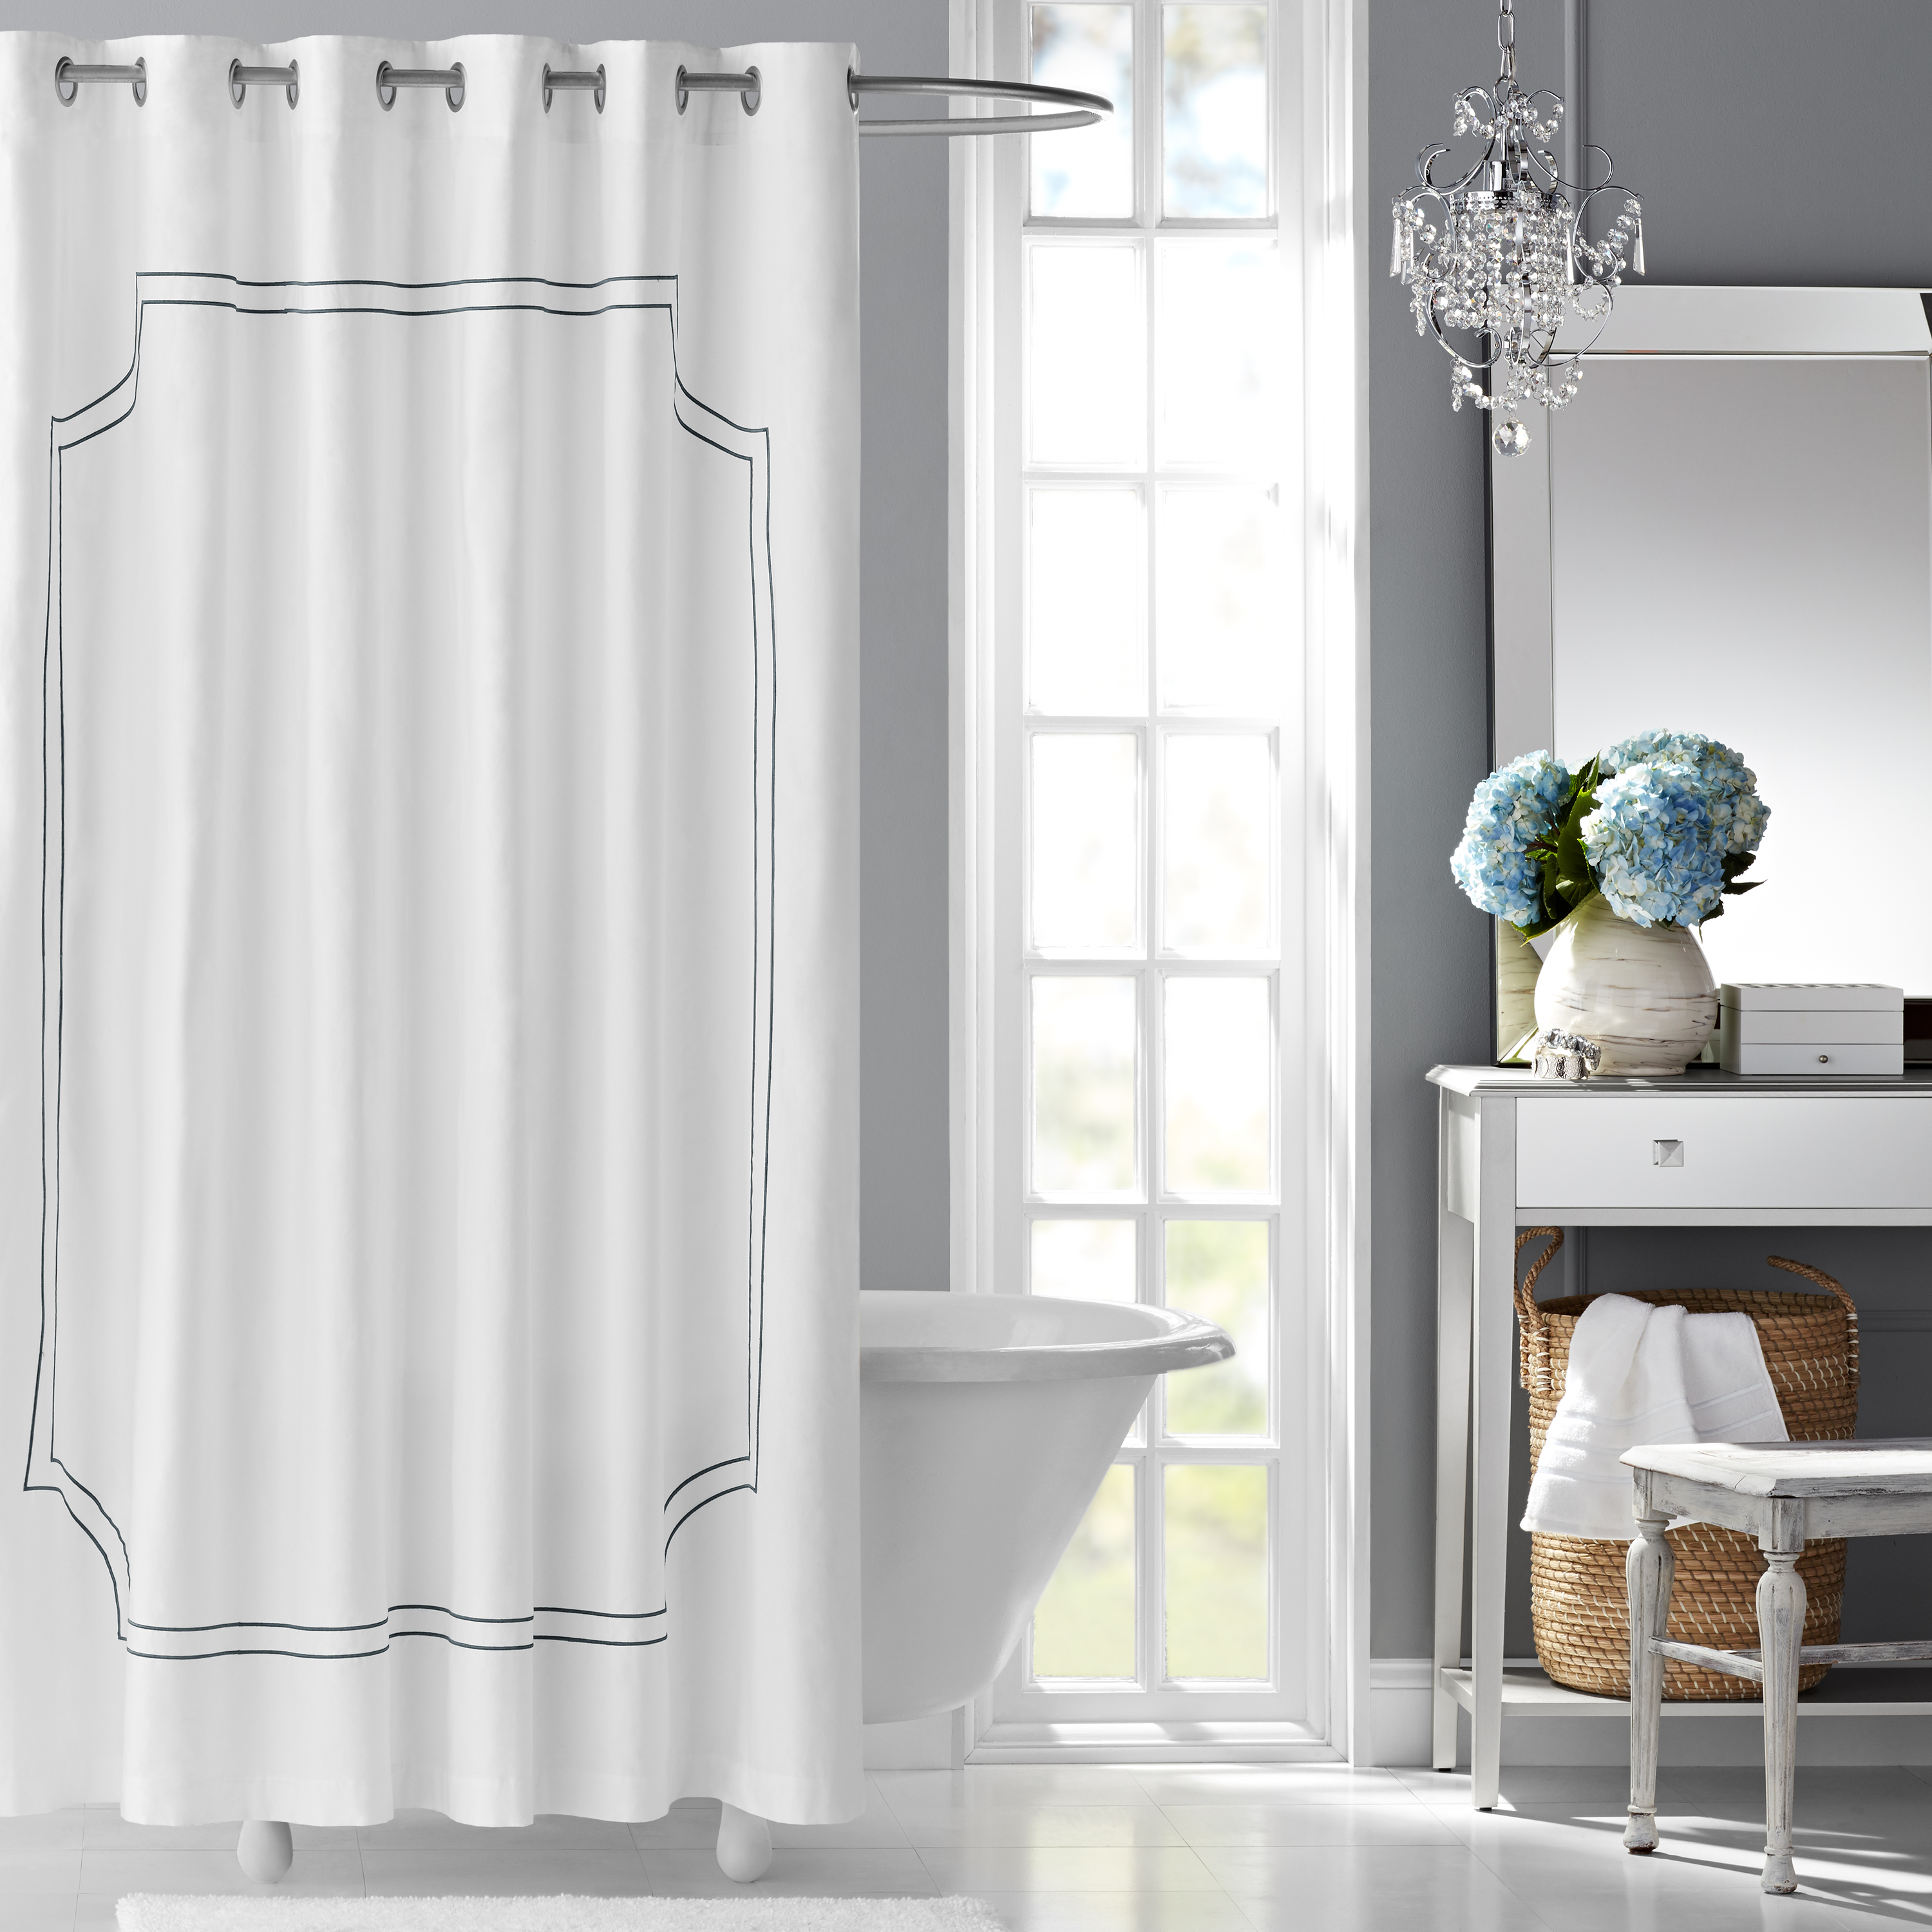 Hotel Style Florence Embroidered Fabric Shower Curtain